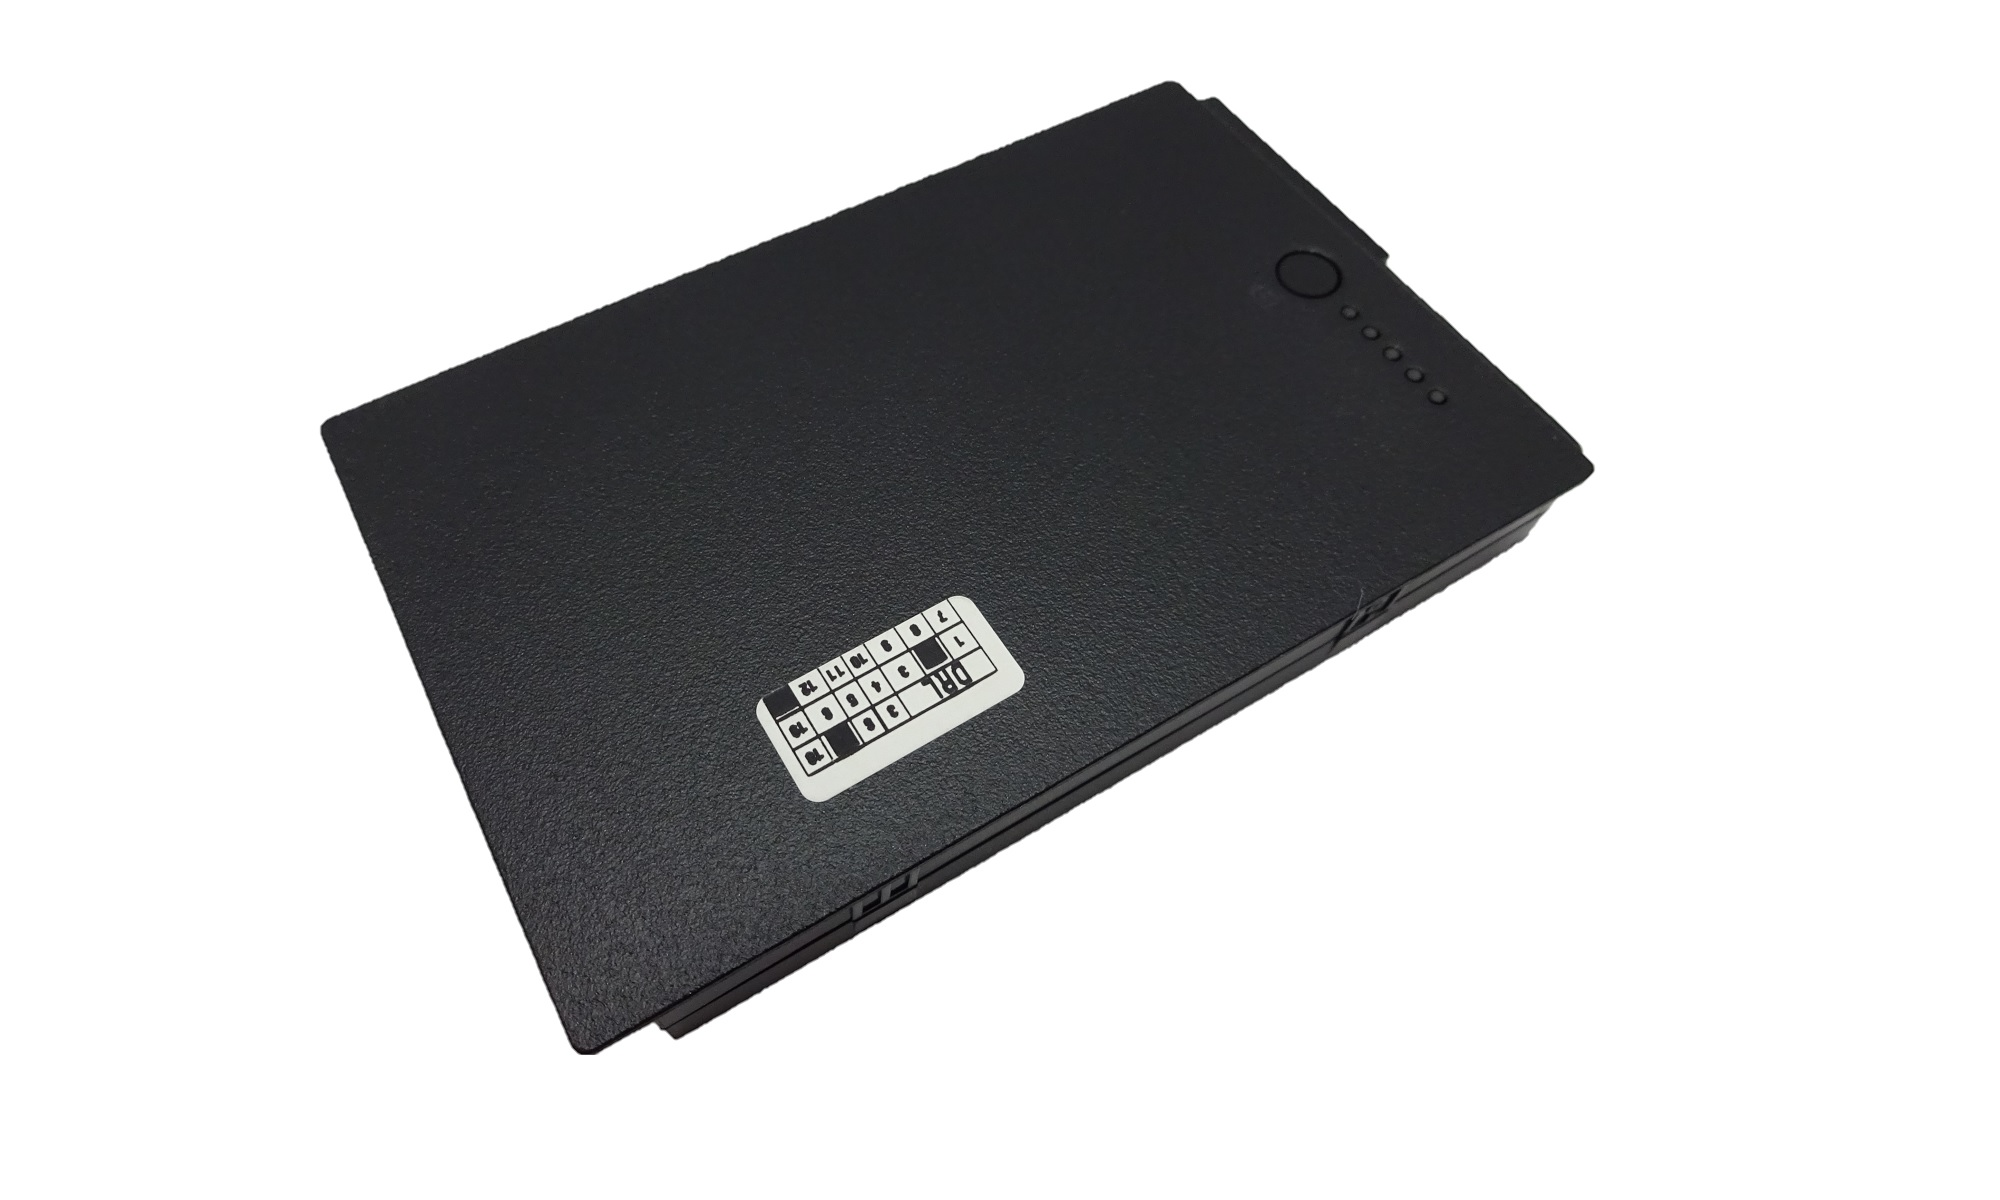 Baterie originala Dell Latitude 12 Rugged Tablet 7202, 7212, 3420mAh, 7.4V, 26Wh, 2 celule